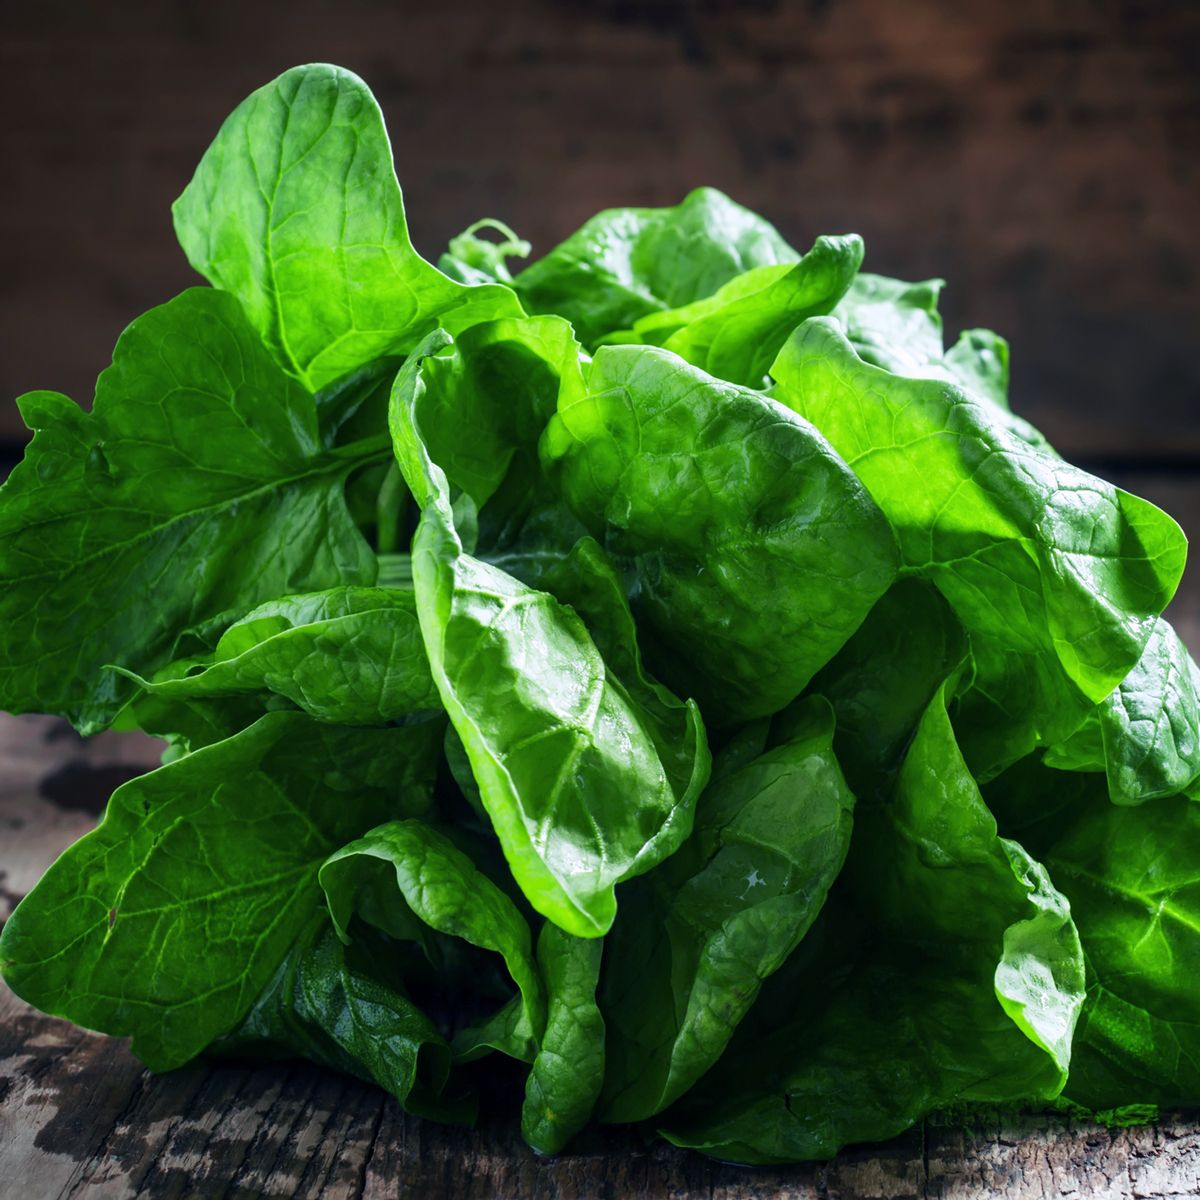 Indulge in a #spinach salad with whole grains and lentils for lunch or dinner. This yummy dish is rich in the amino acid L-arginine—which is critical for the formation of collagen (the structural protein that helps keep skin firm and wrinkle free). #health #skincare #healthyskin